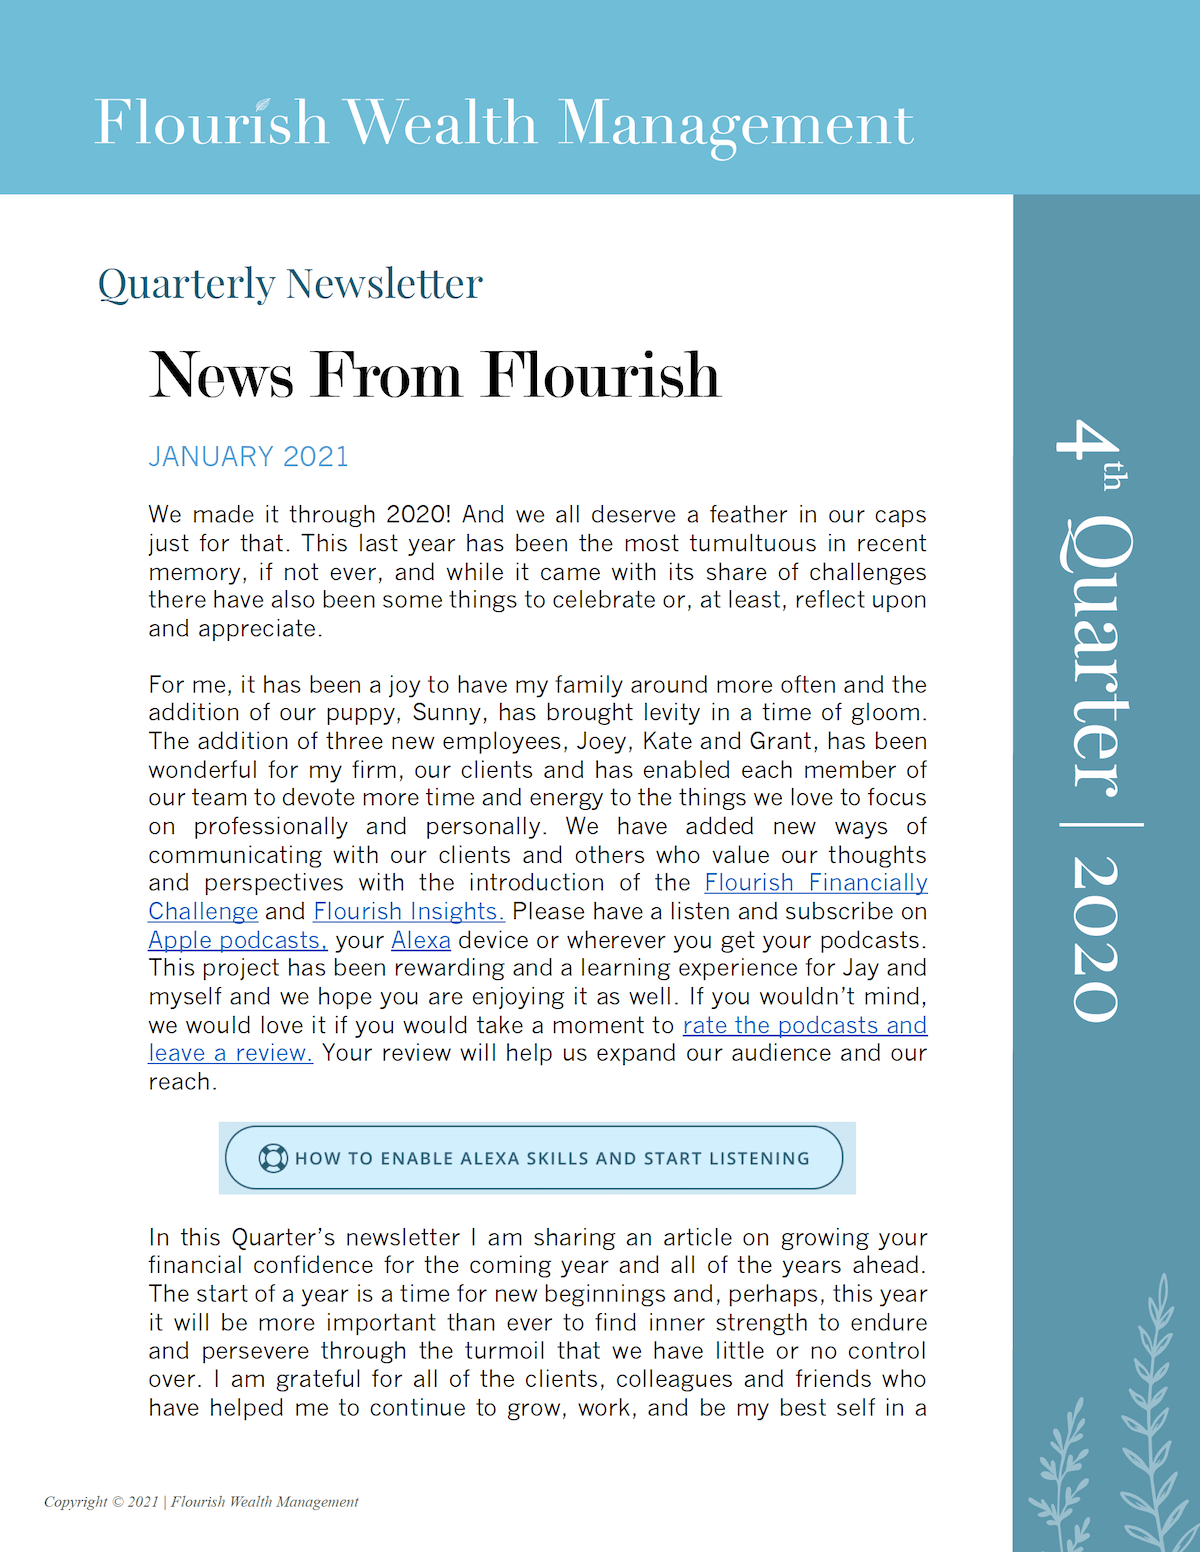 Q4 2020 Quarterly Newsletter